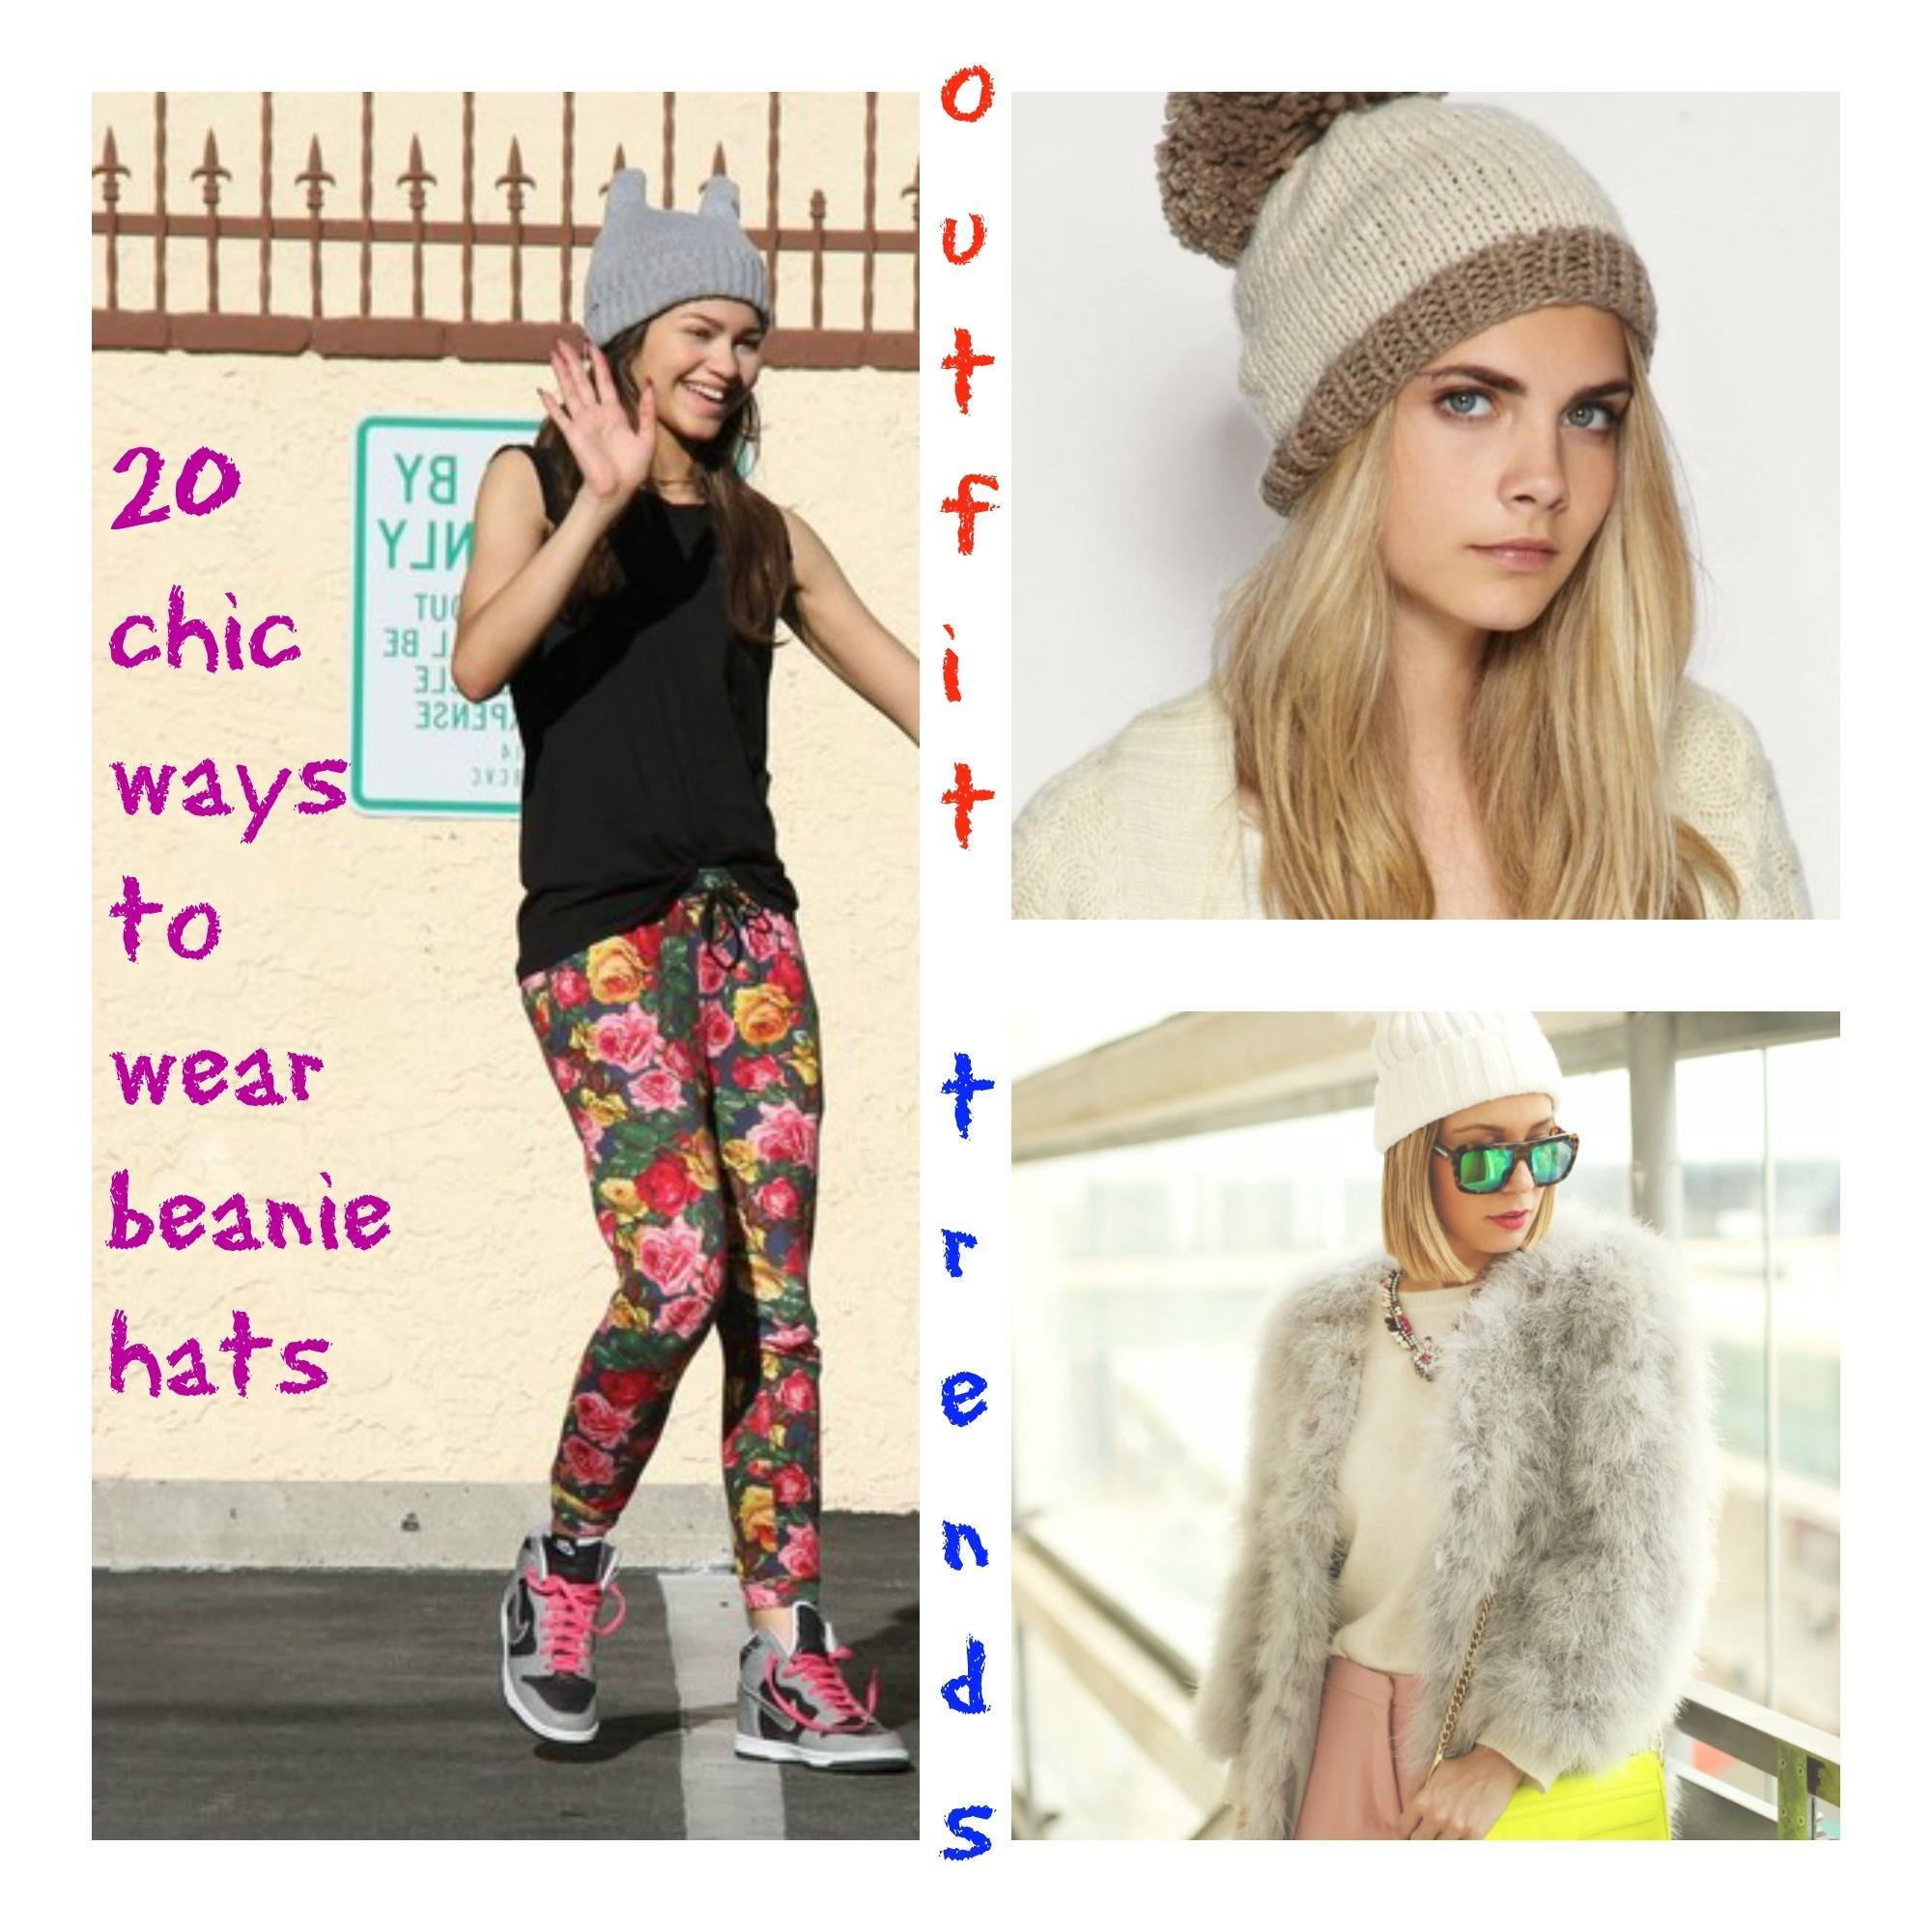 How To Wear Beanie Hats 20 Chic Outfits To Wear With Beanies Cheap Casual Dress Fashion Tips For Men Or Women